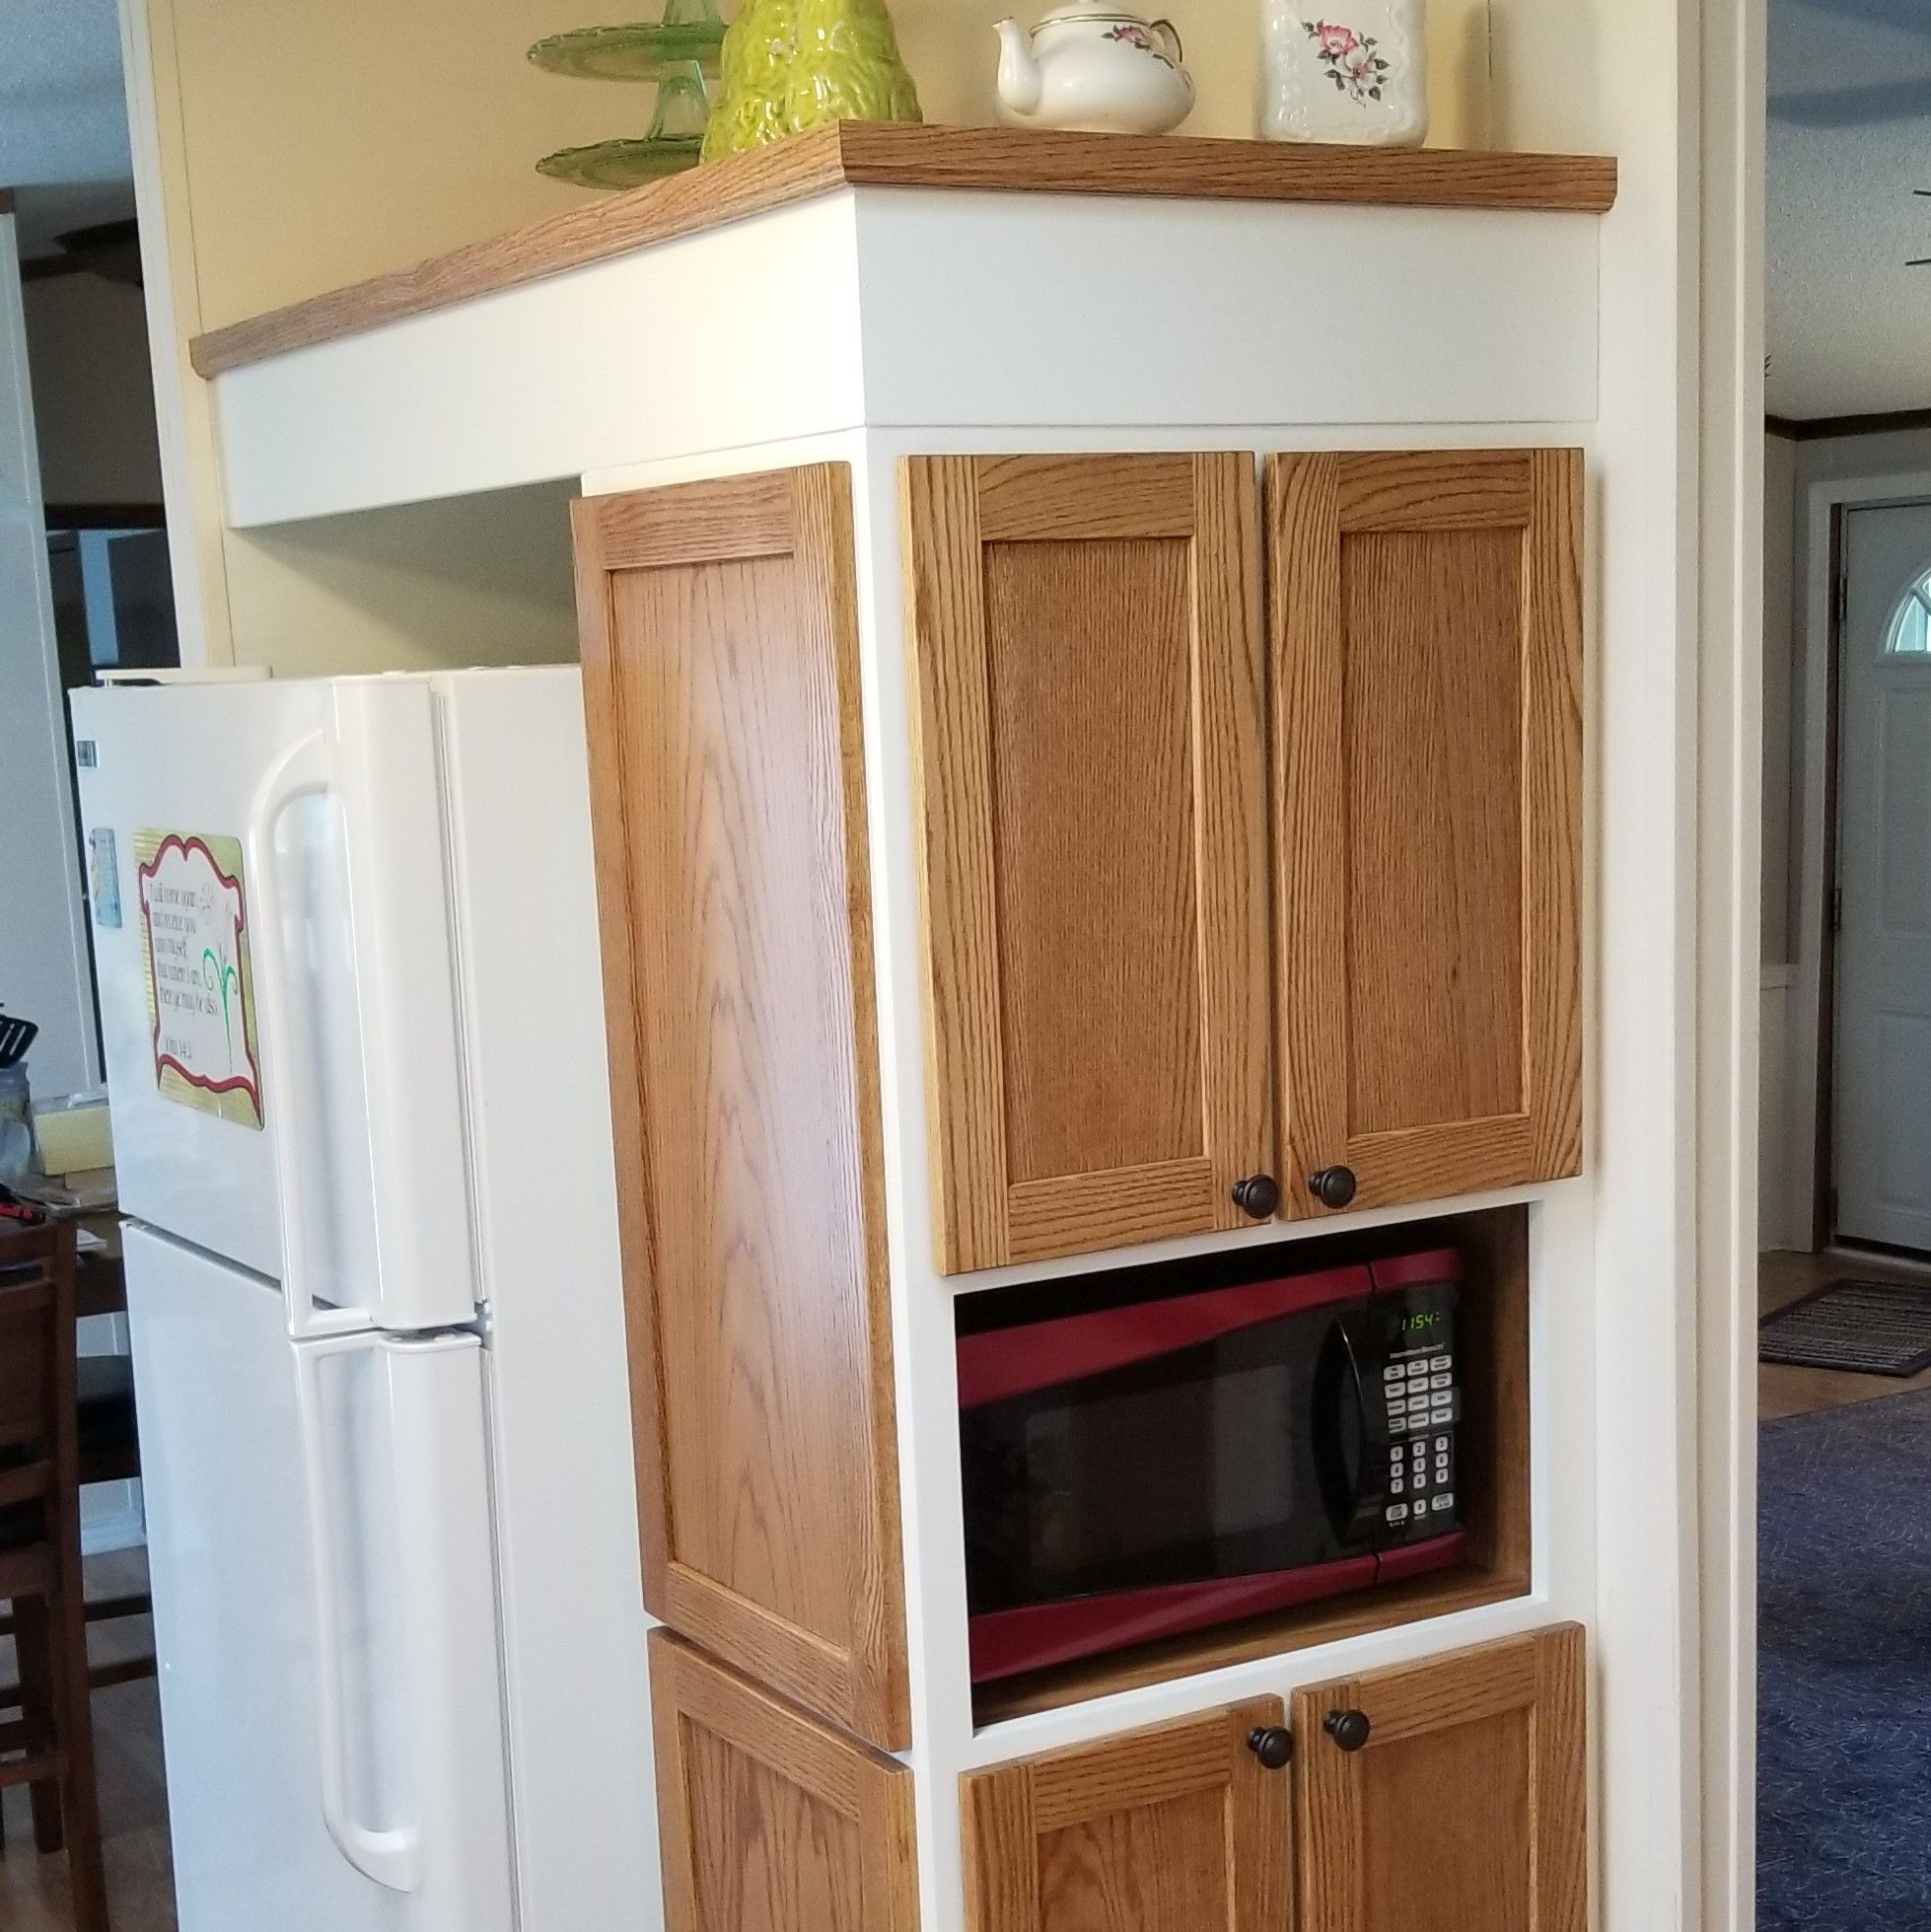 Custom Kitchen Cabinet And Reconditioning I Built A New Pantry And Microwave Cabinet New Doo Kitchen Cabinets Custom Kitchen Cabinets Kitchen Pantry Cabinets